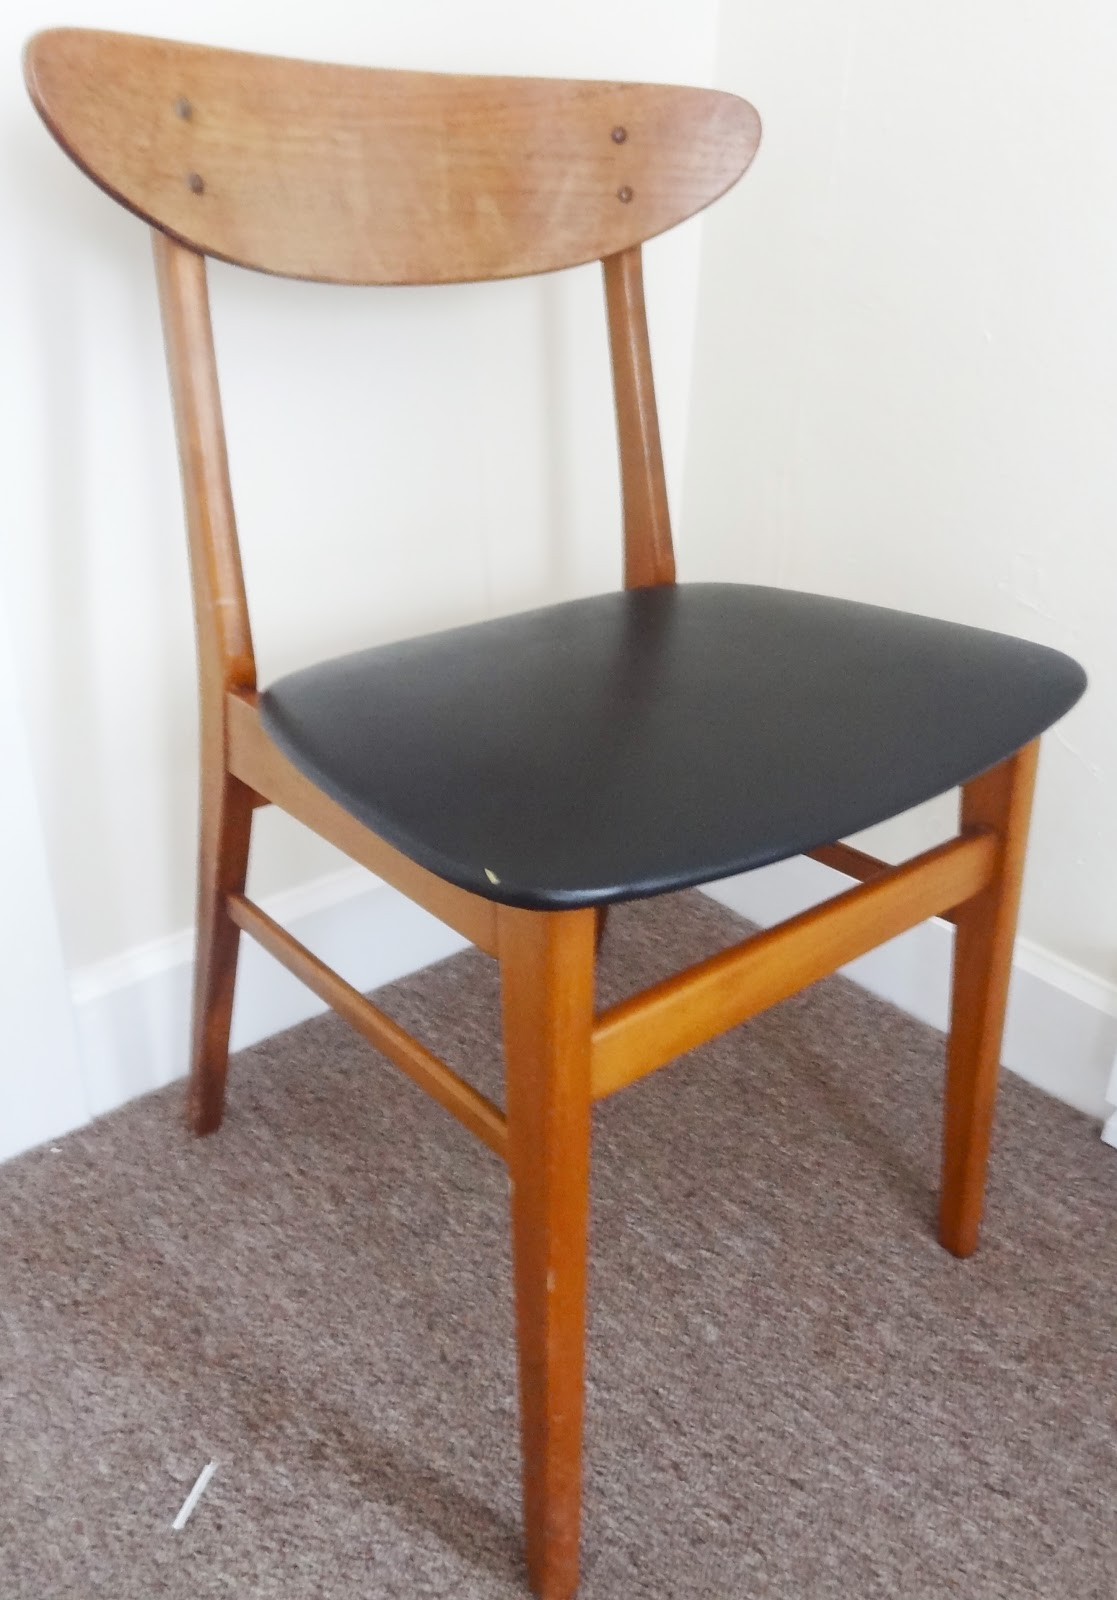 Houzz Quick Fix Reupholster A Chair Seat Revamp Homegoods